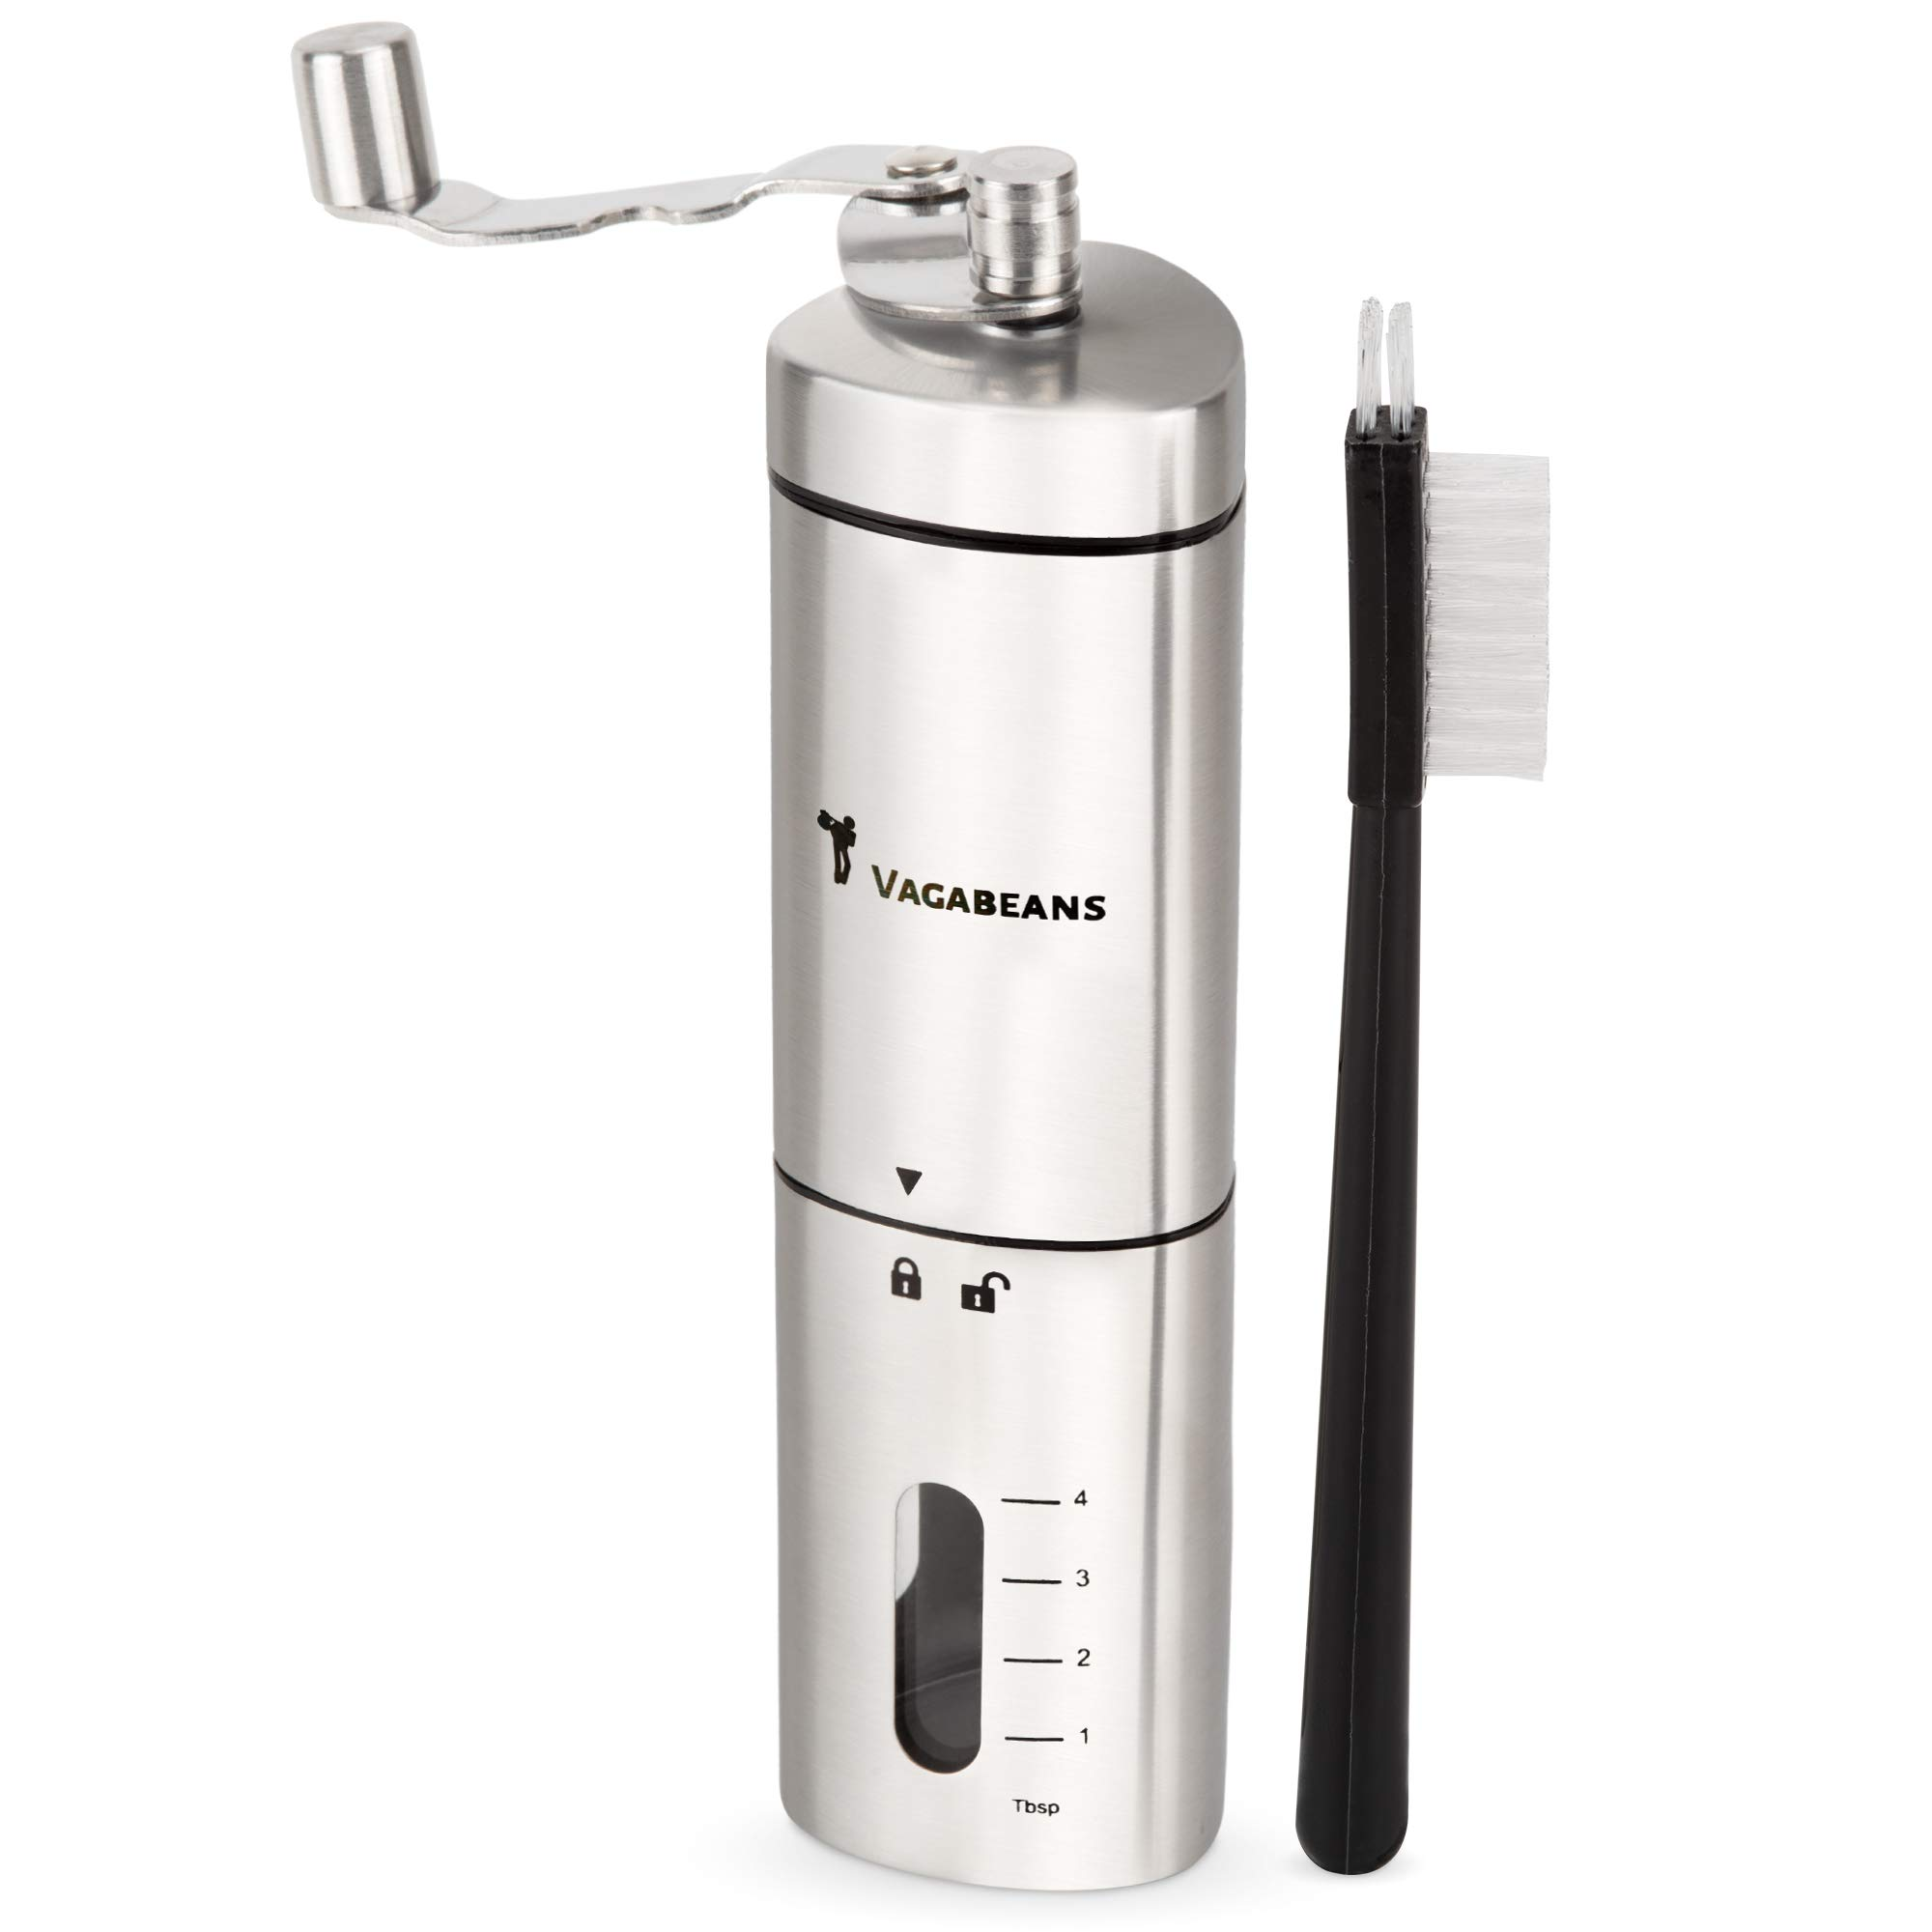 Improved Manual Coffee Grinder (Hand Coffee Grinder) with Easier to Grasp Triangle Shape. New Design for Easier, More Effective Burr Grinding. Stainless Steel, Portable with Folding Metal Handle